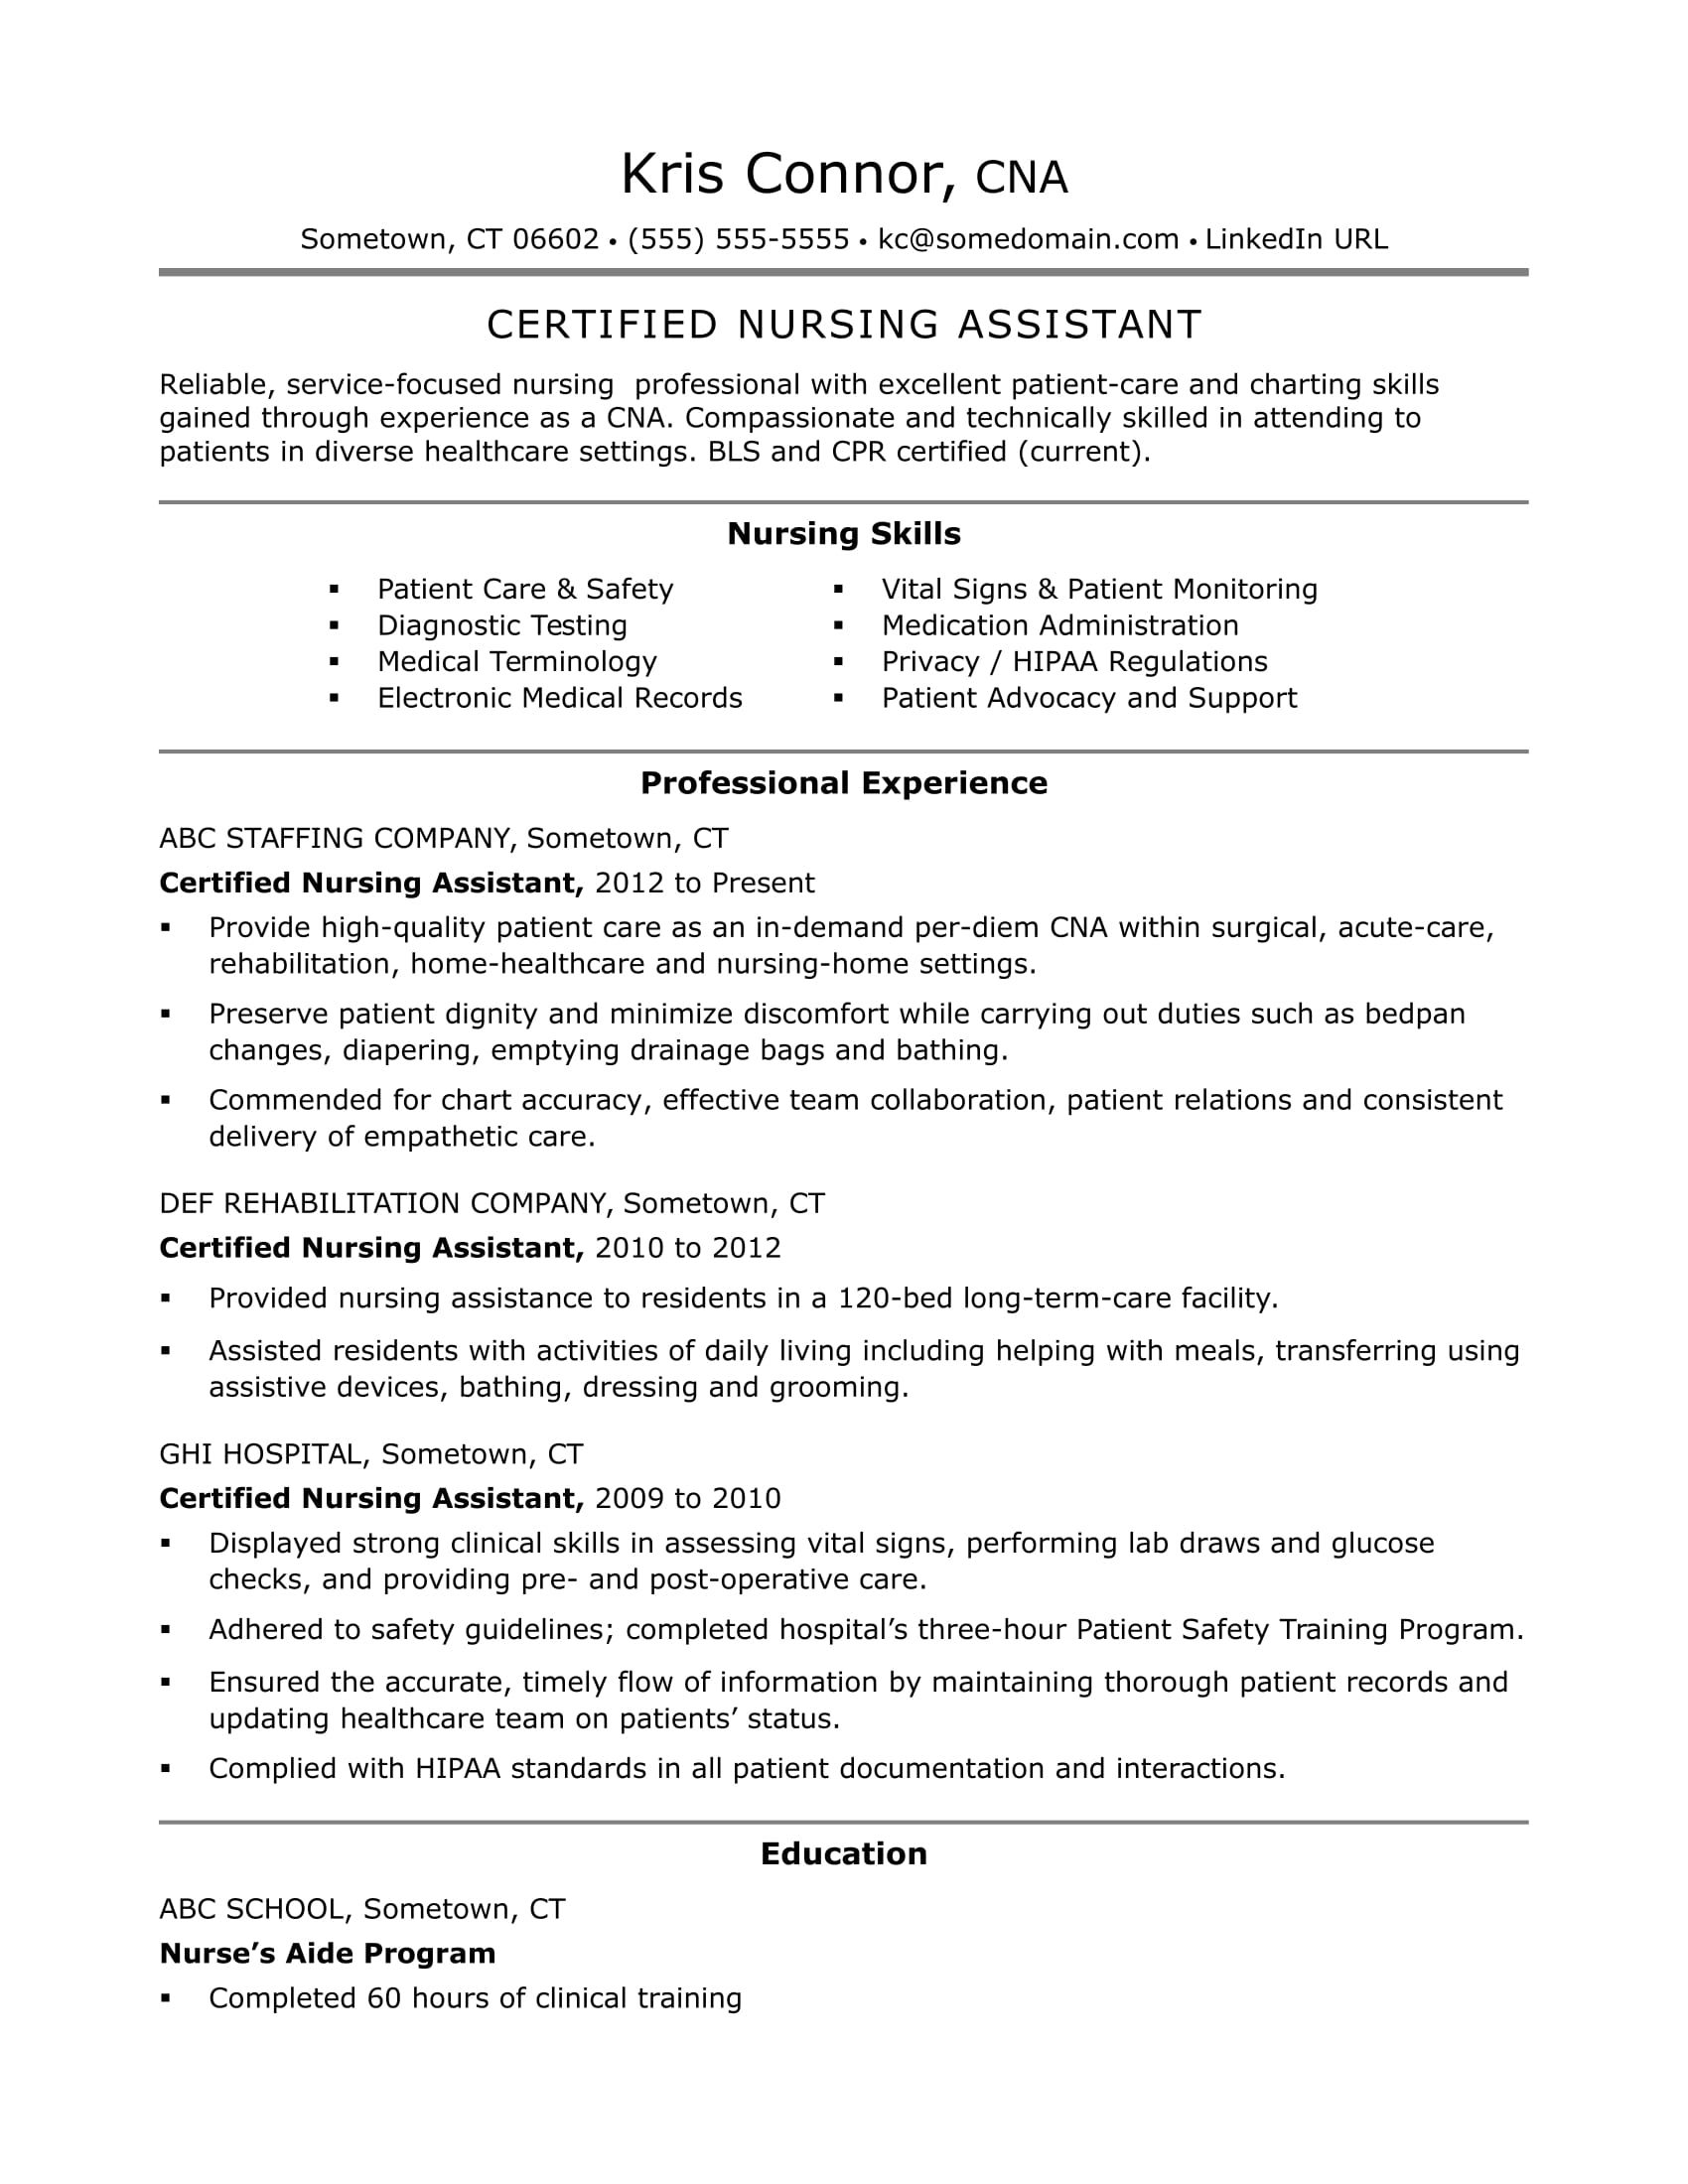 CNA Resume Example  What Does A Resume Look Like